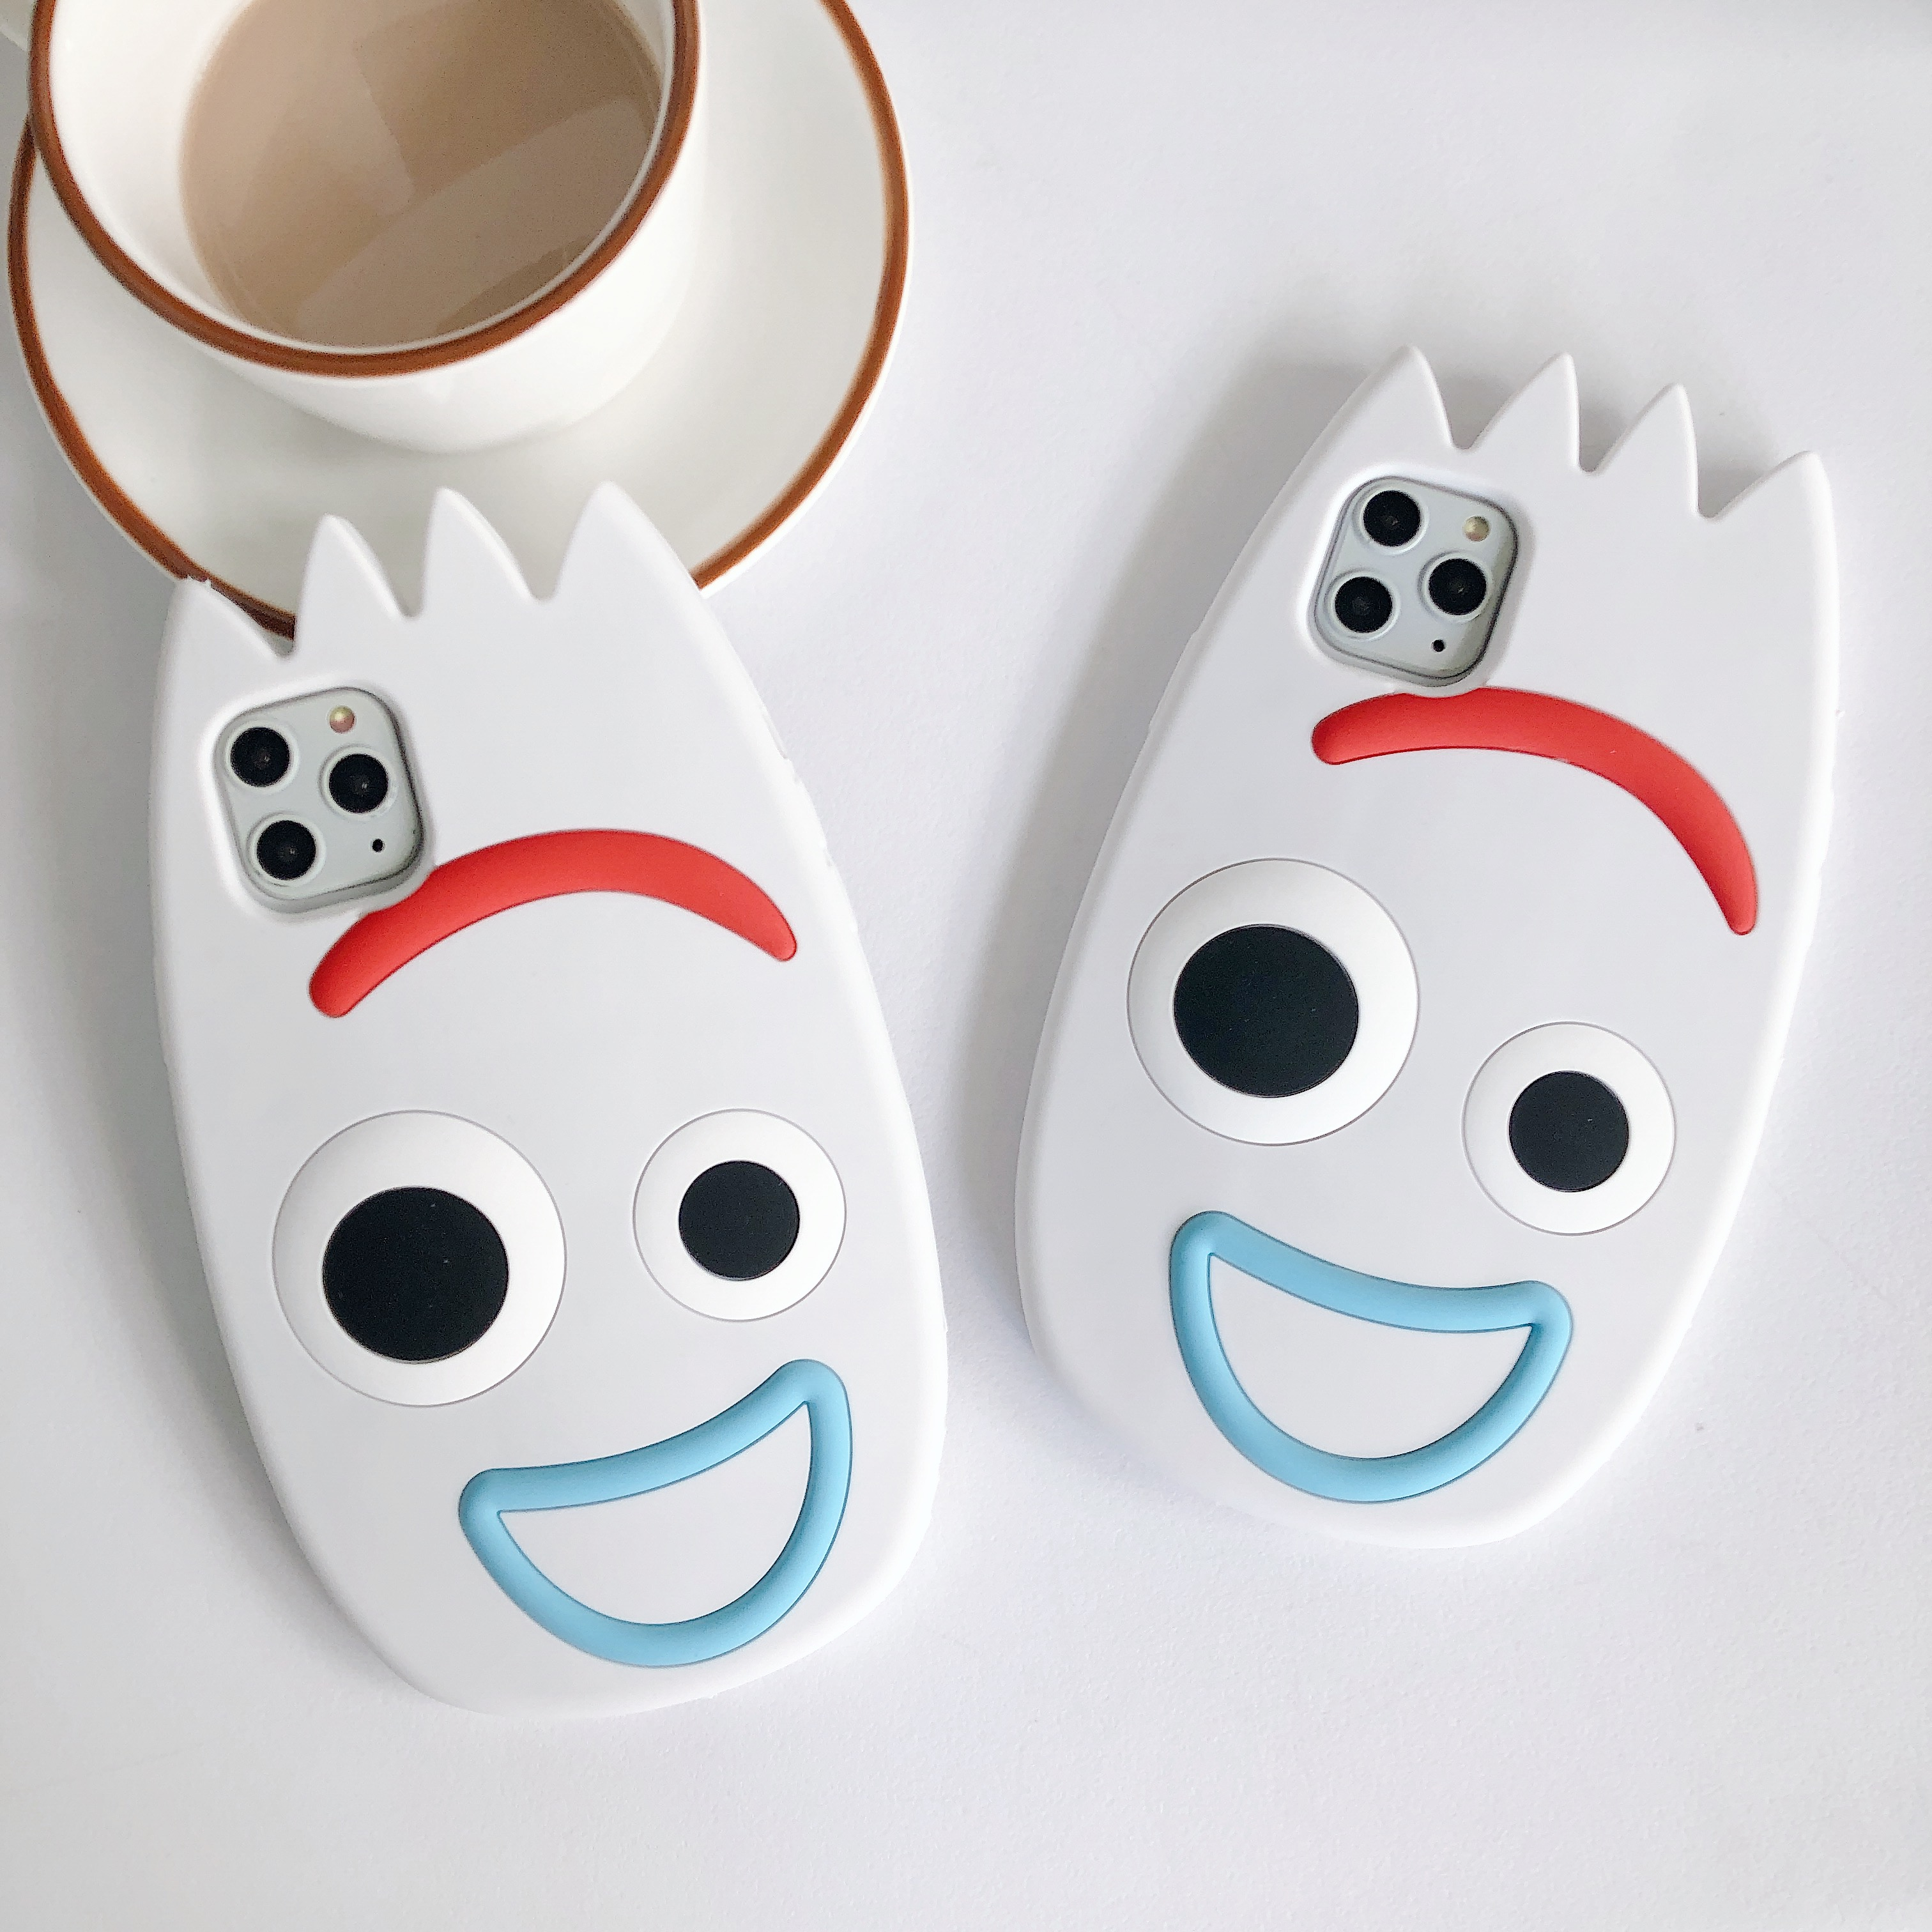 3D Cute Cartoon Funny Smile Forky Case For Apple Iphone XS 11 Pro Max XR X 6 6S 7 8 Plus Soft Silicone Rubber Cover Shell Fundas